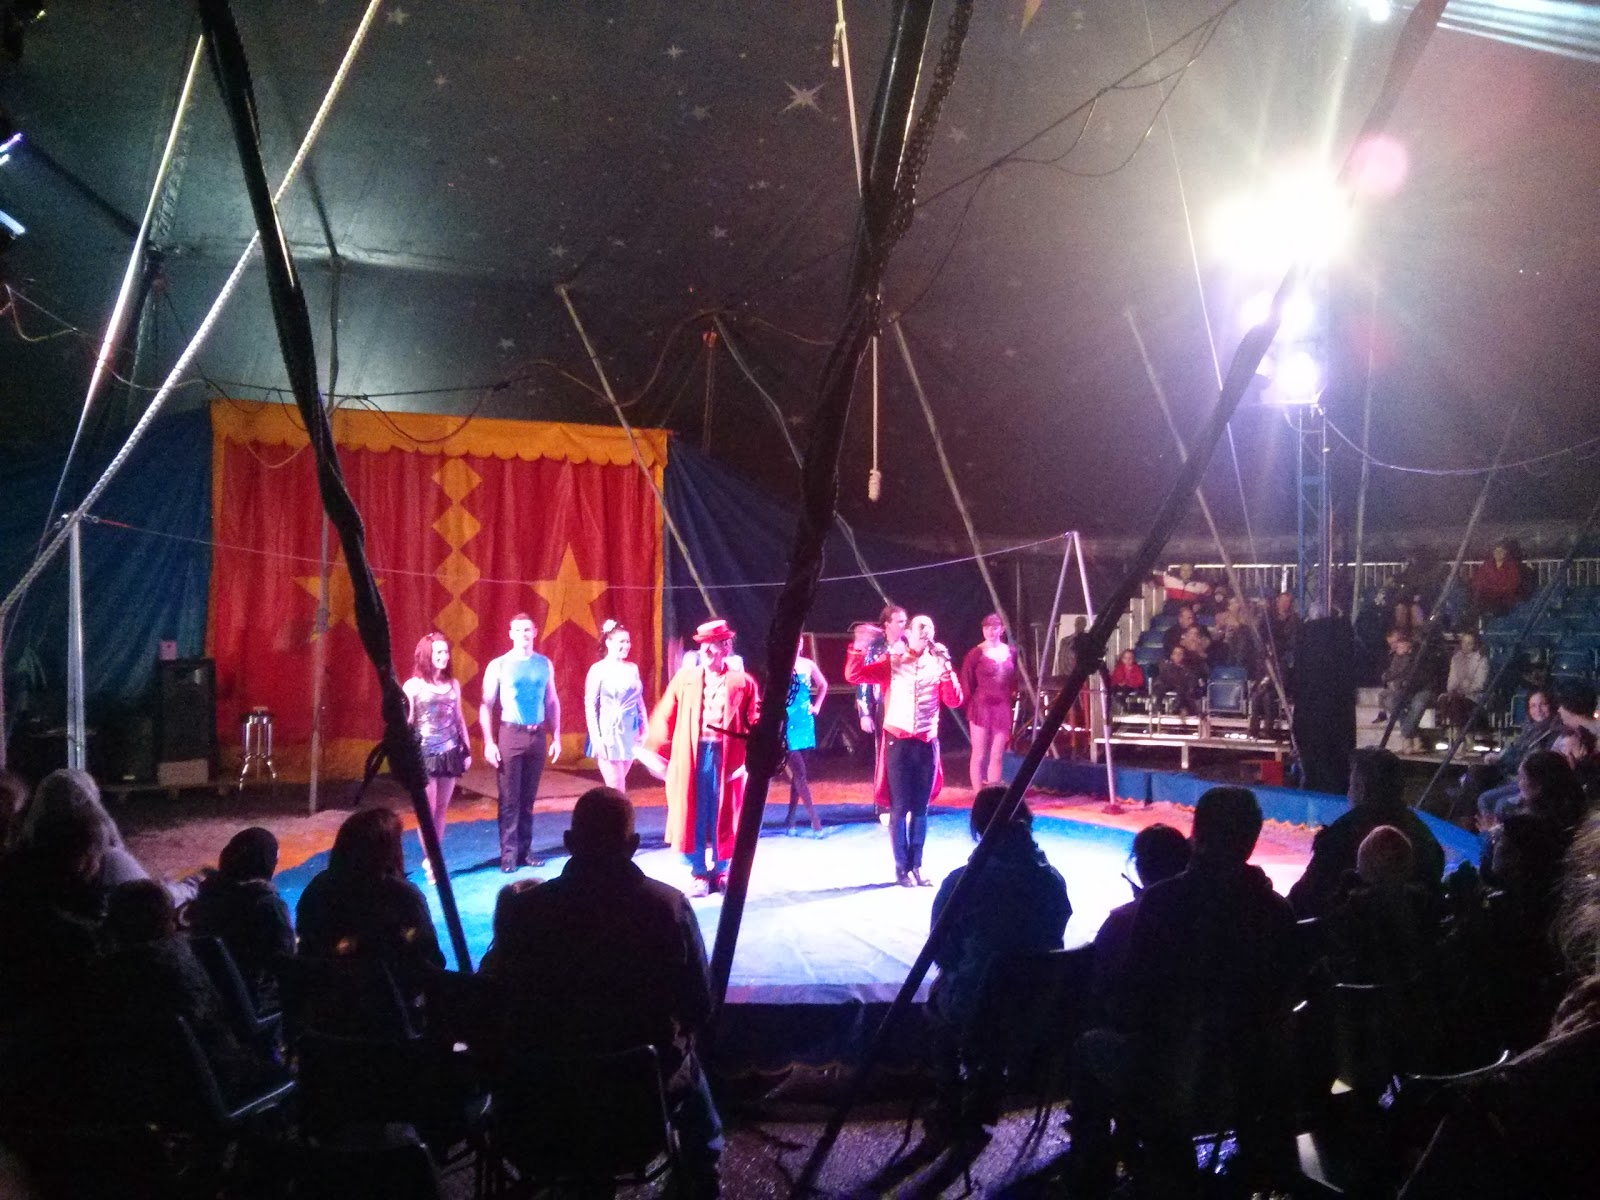 The Circus Performers Taking a Bow